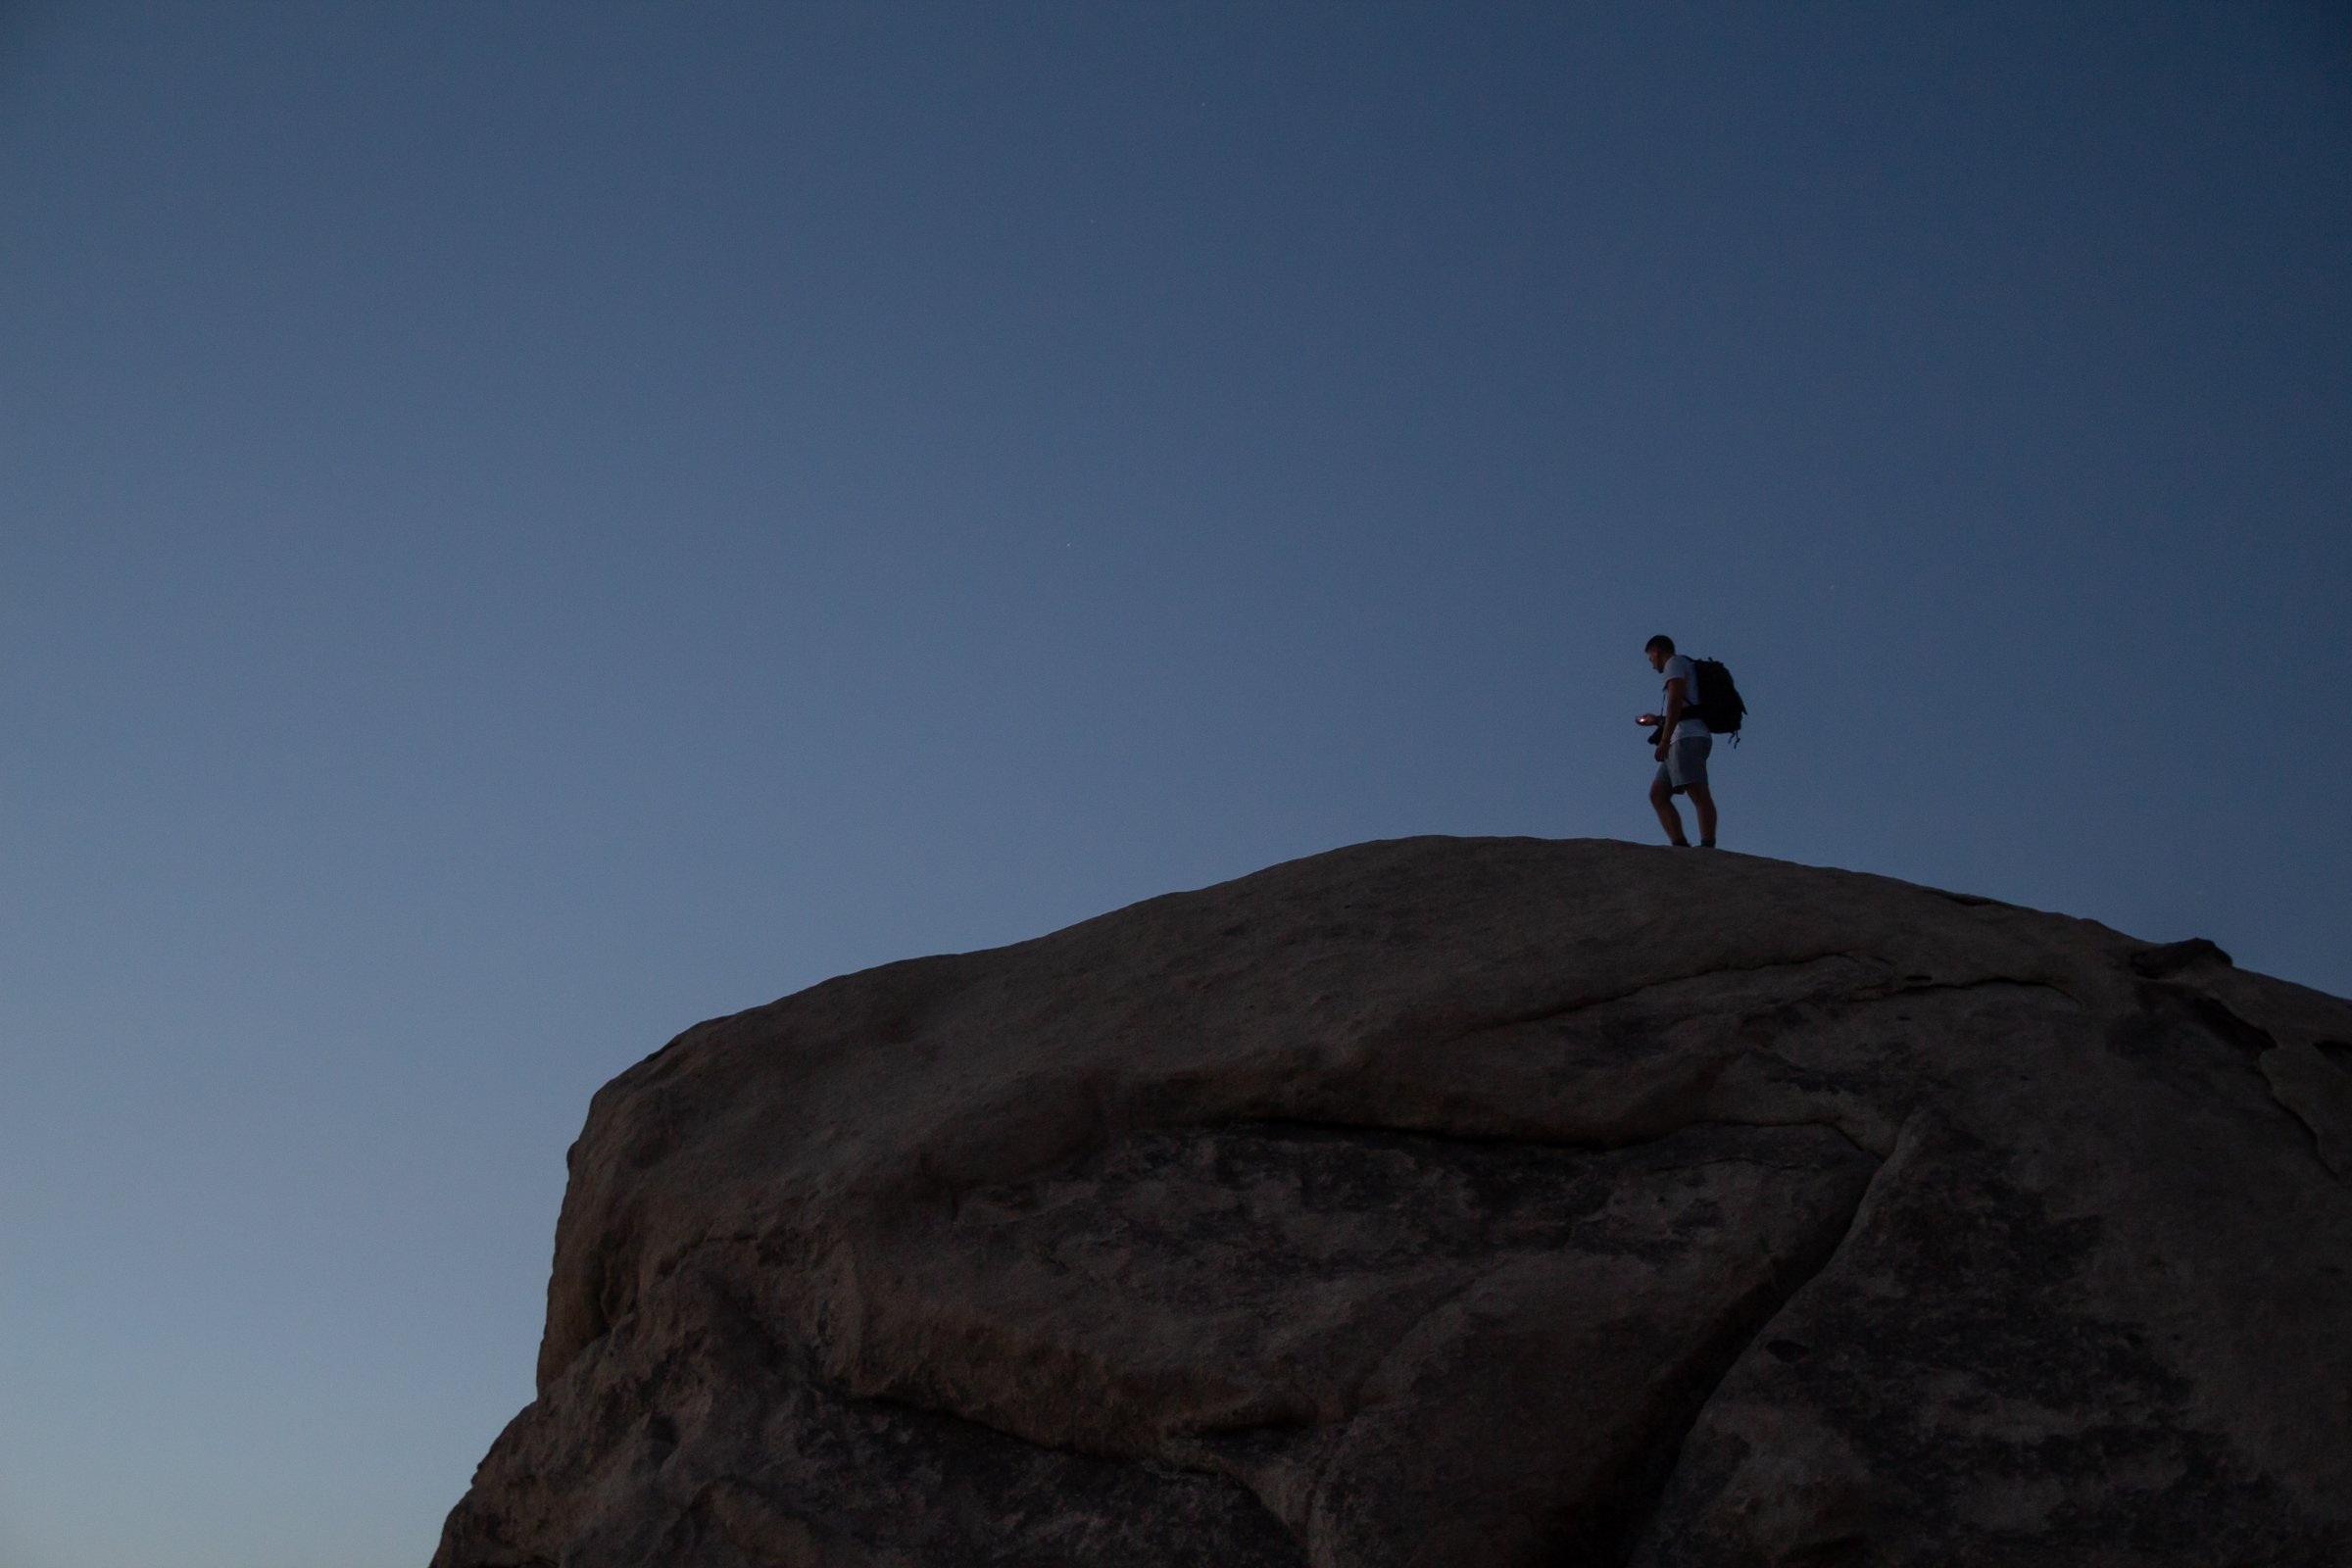 Man With Backpack On Rock In Joshua Tree Park